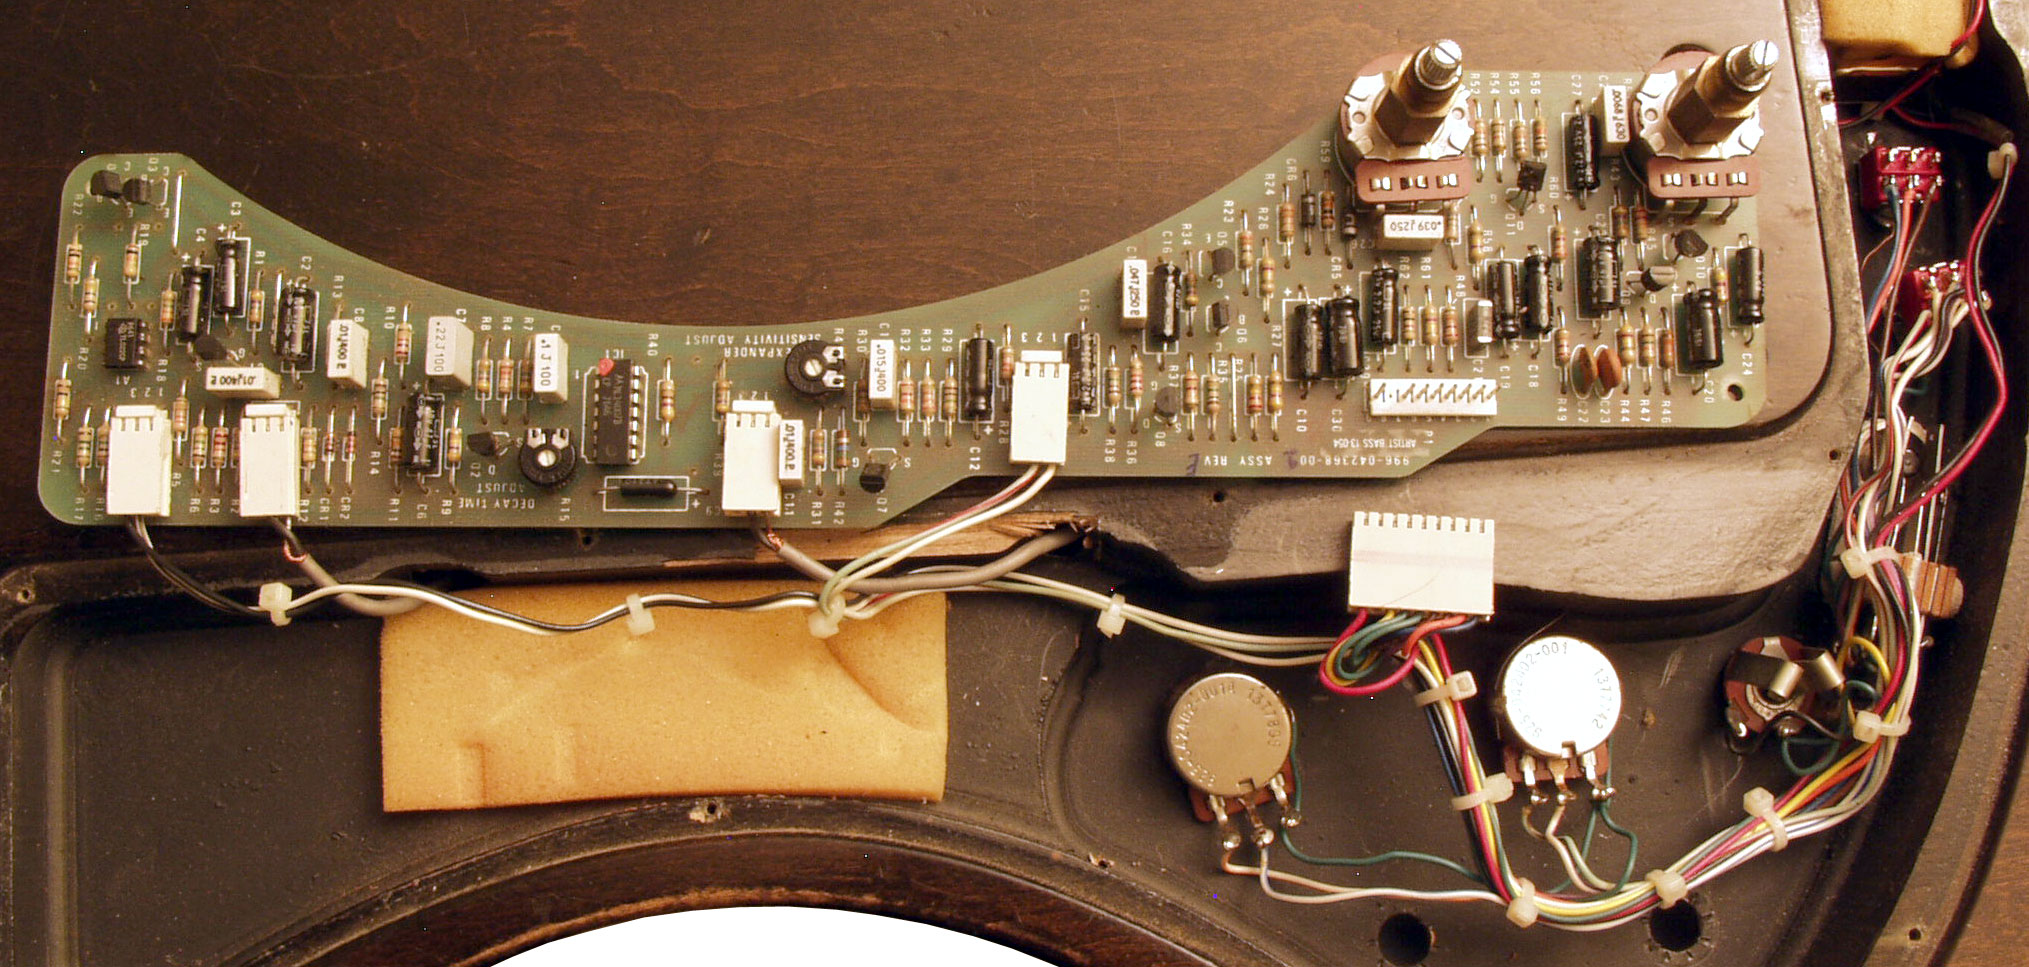 The Gibson Rd Artist Technical Specifications Flyguitars 1981 Les Paul Wiring Harness Moog Circuit Board